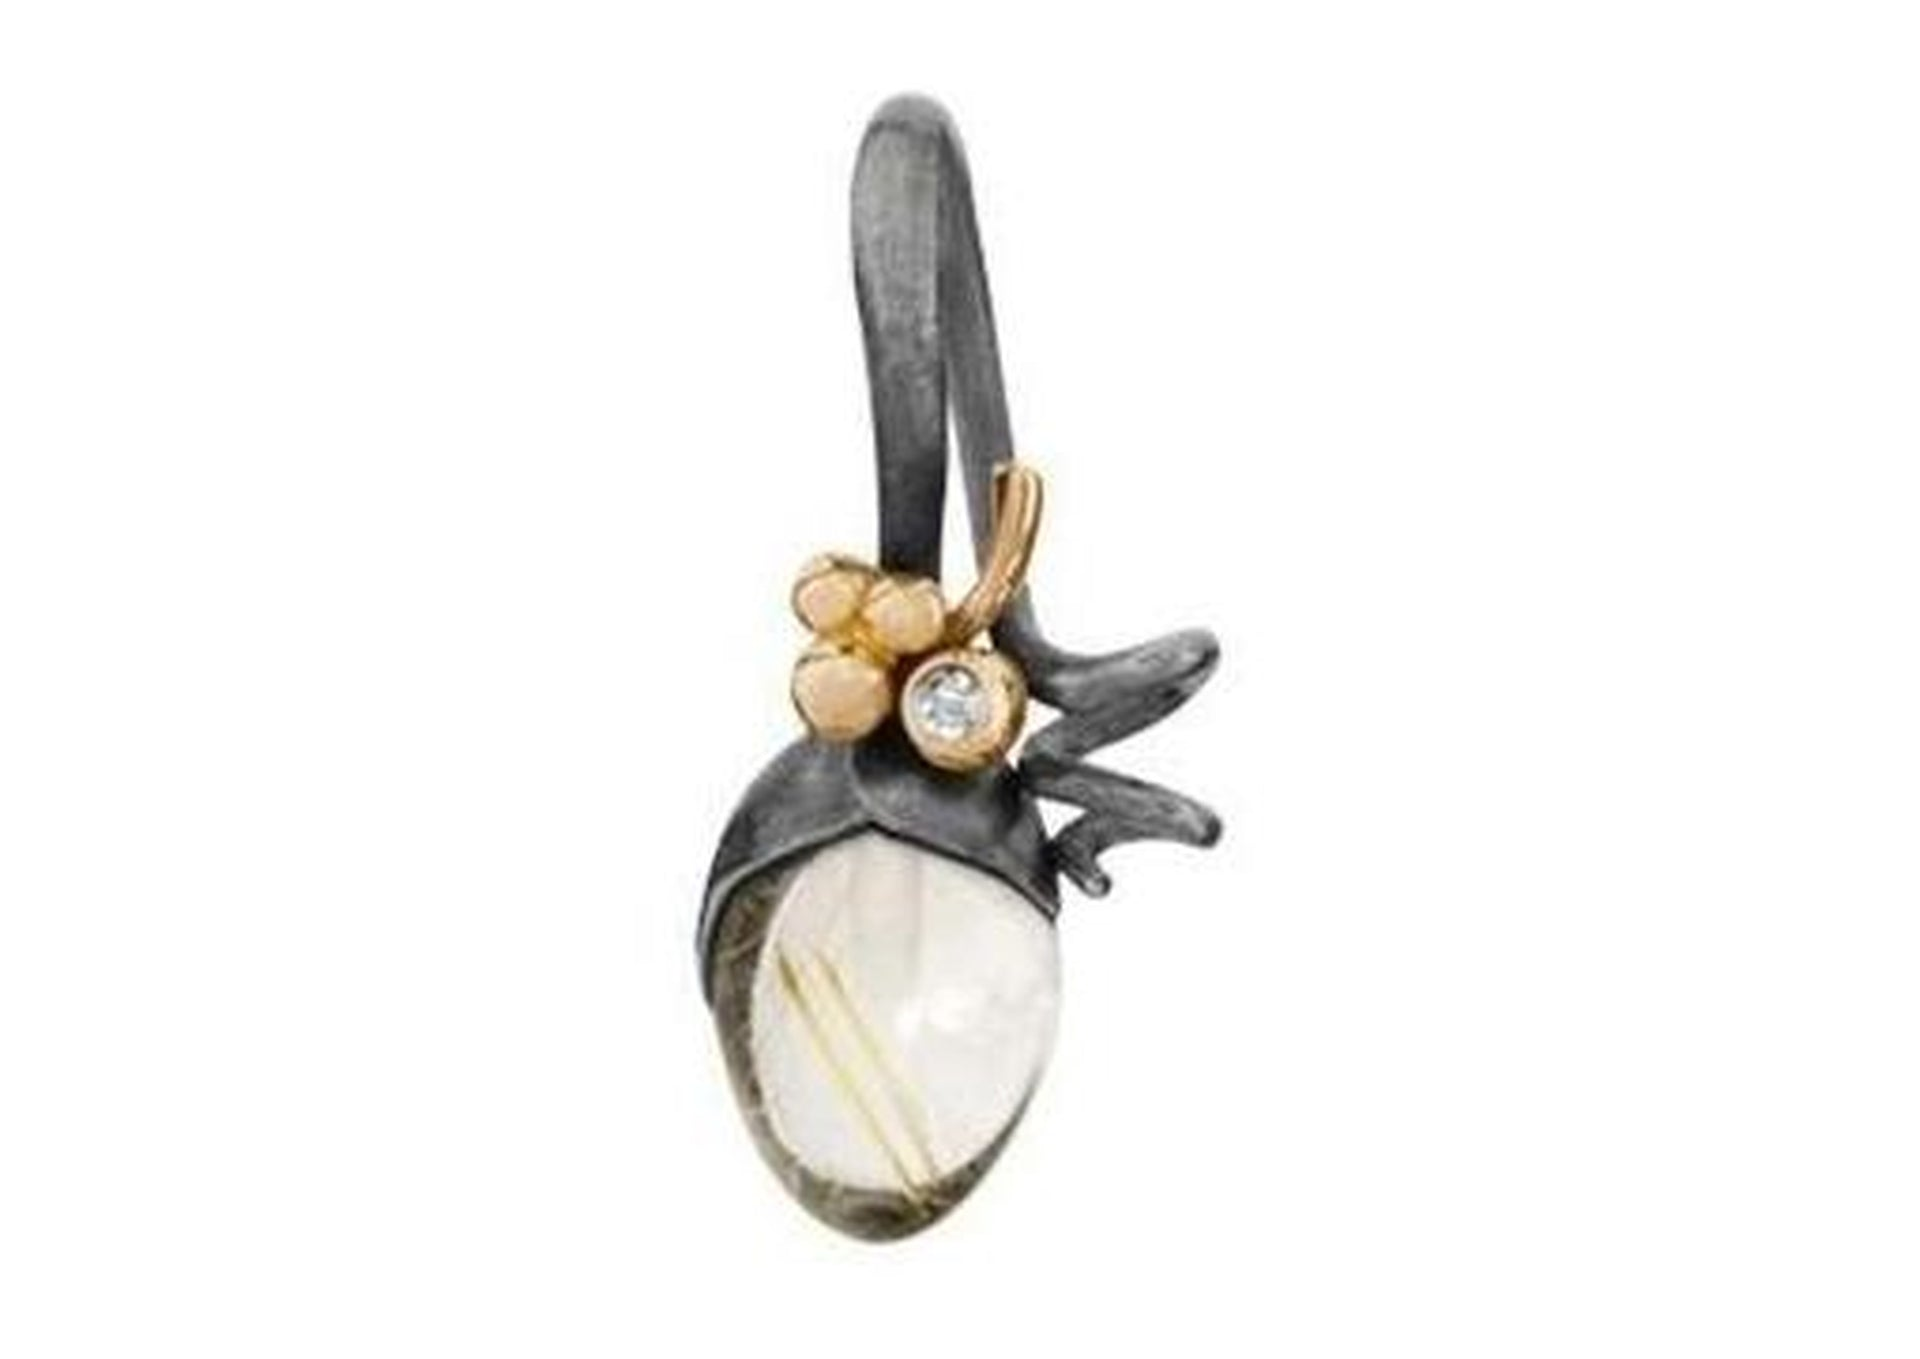 Lotus pendant in gold and silver with rutile quartz and diamonds TW.VS-by-Ole Lynggaard-from official stockist-Jens Hansen